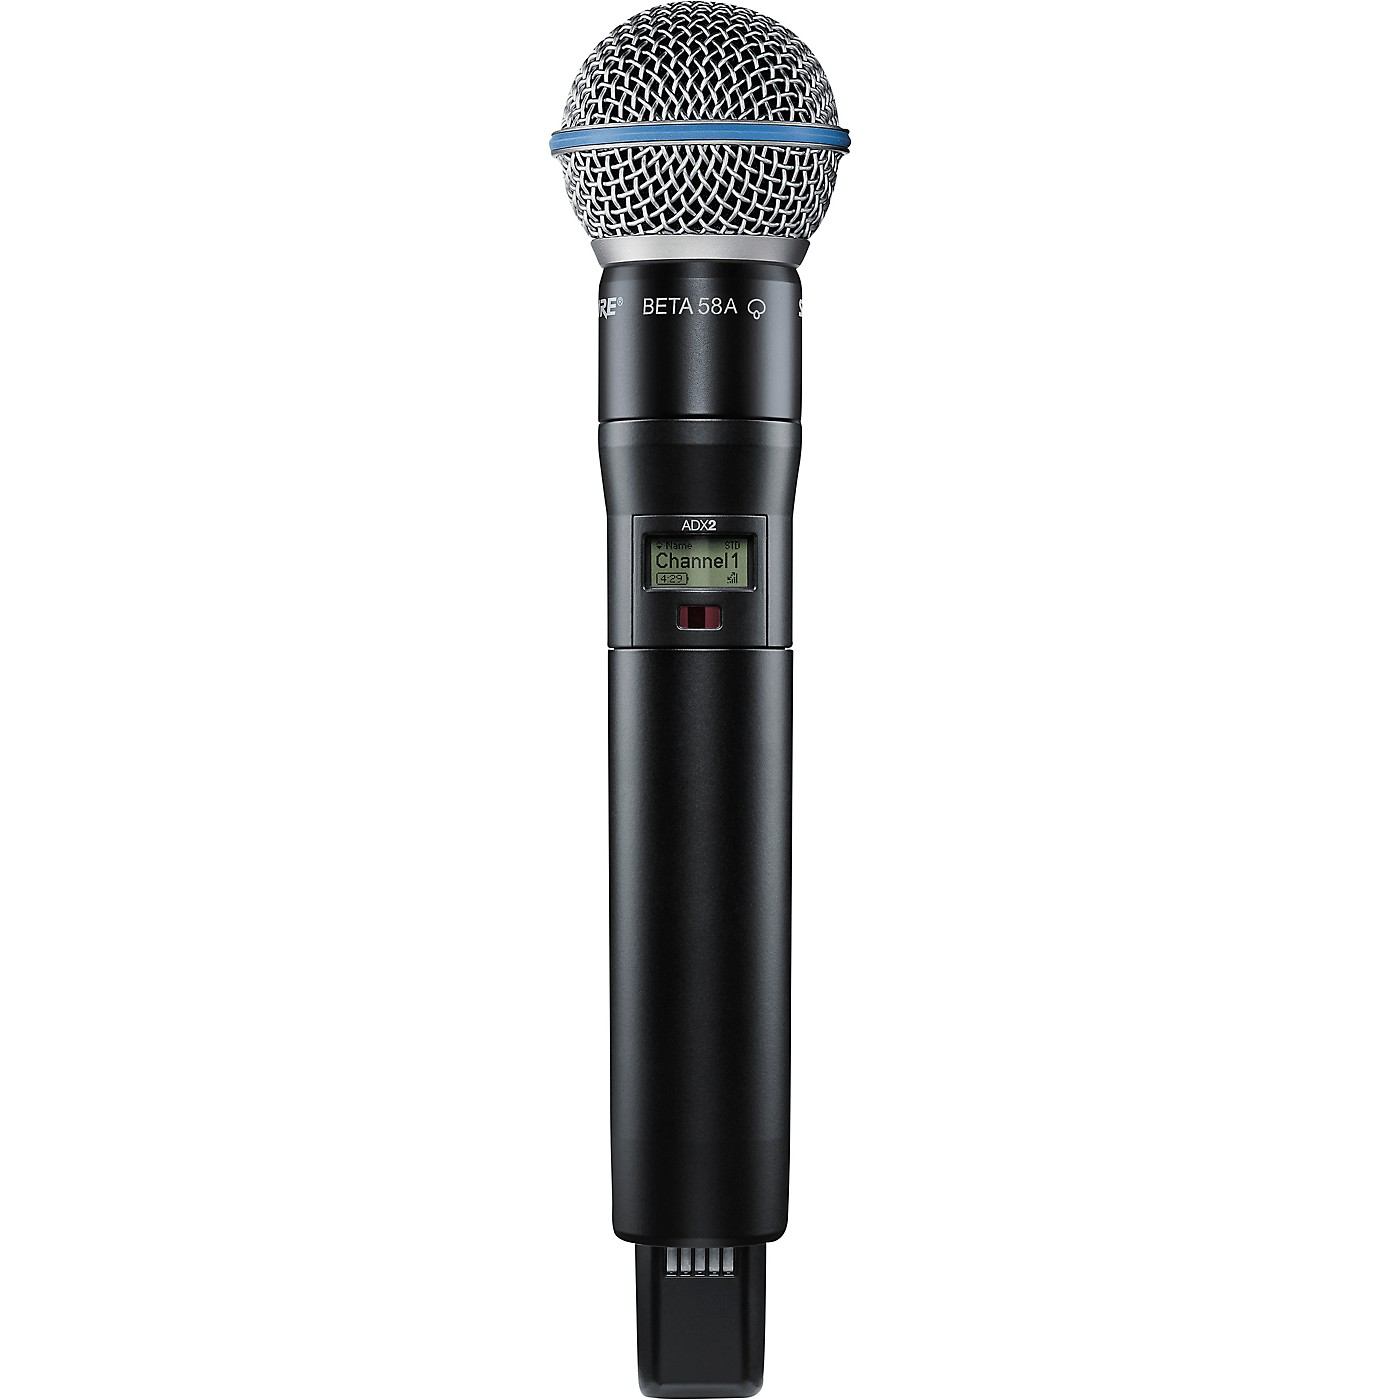 Shure Axient Digital ADX2/B58 Wireless Handheld Microphone Transmitter With BETA 58A Capsule thumbnail